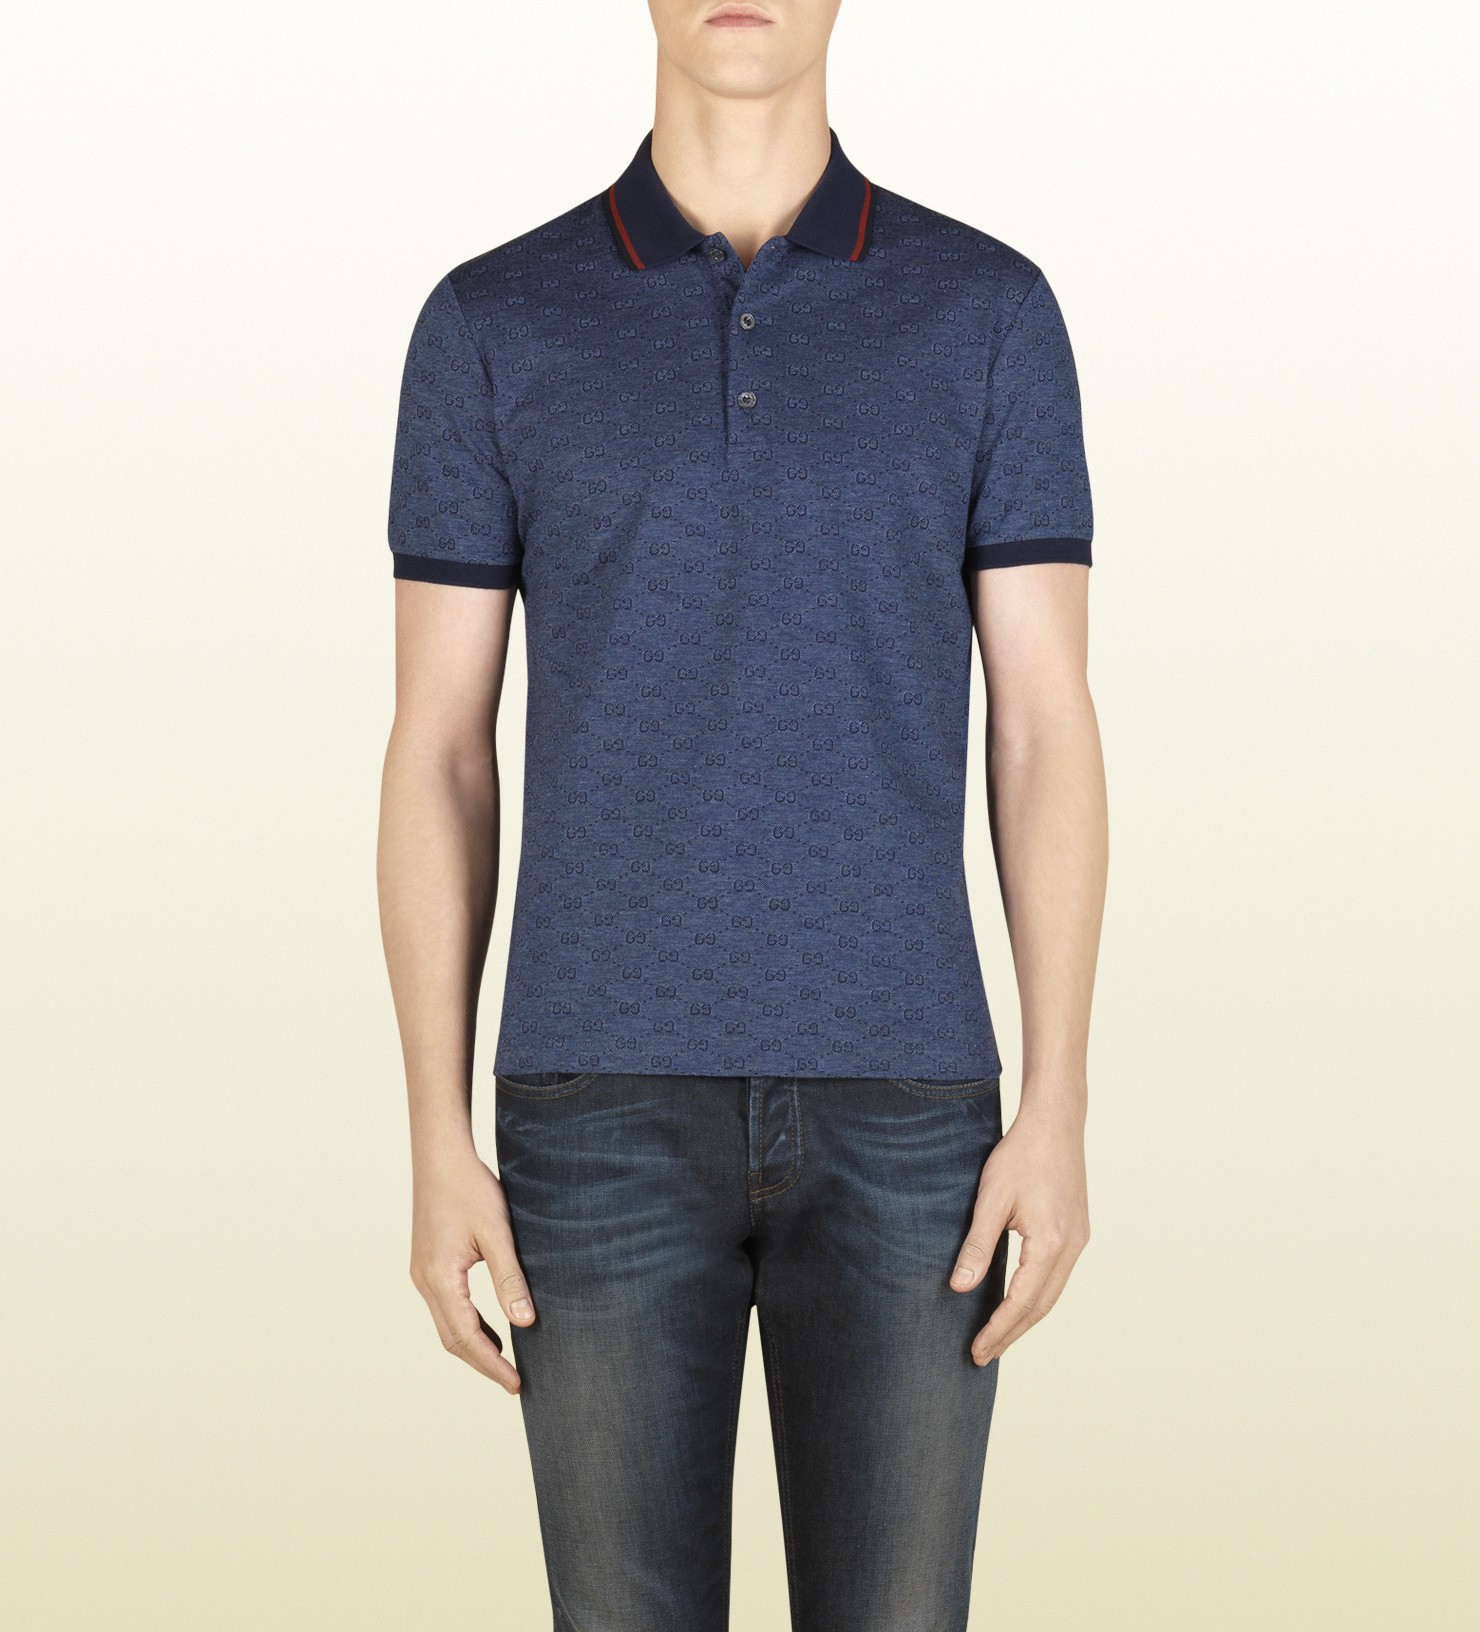 4ab125cf3feb9 Gucci Blue Gg Jacquard Cotton Pique Polo in Blue for Men - Lyst